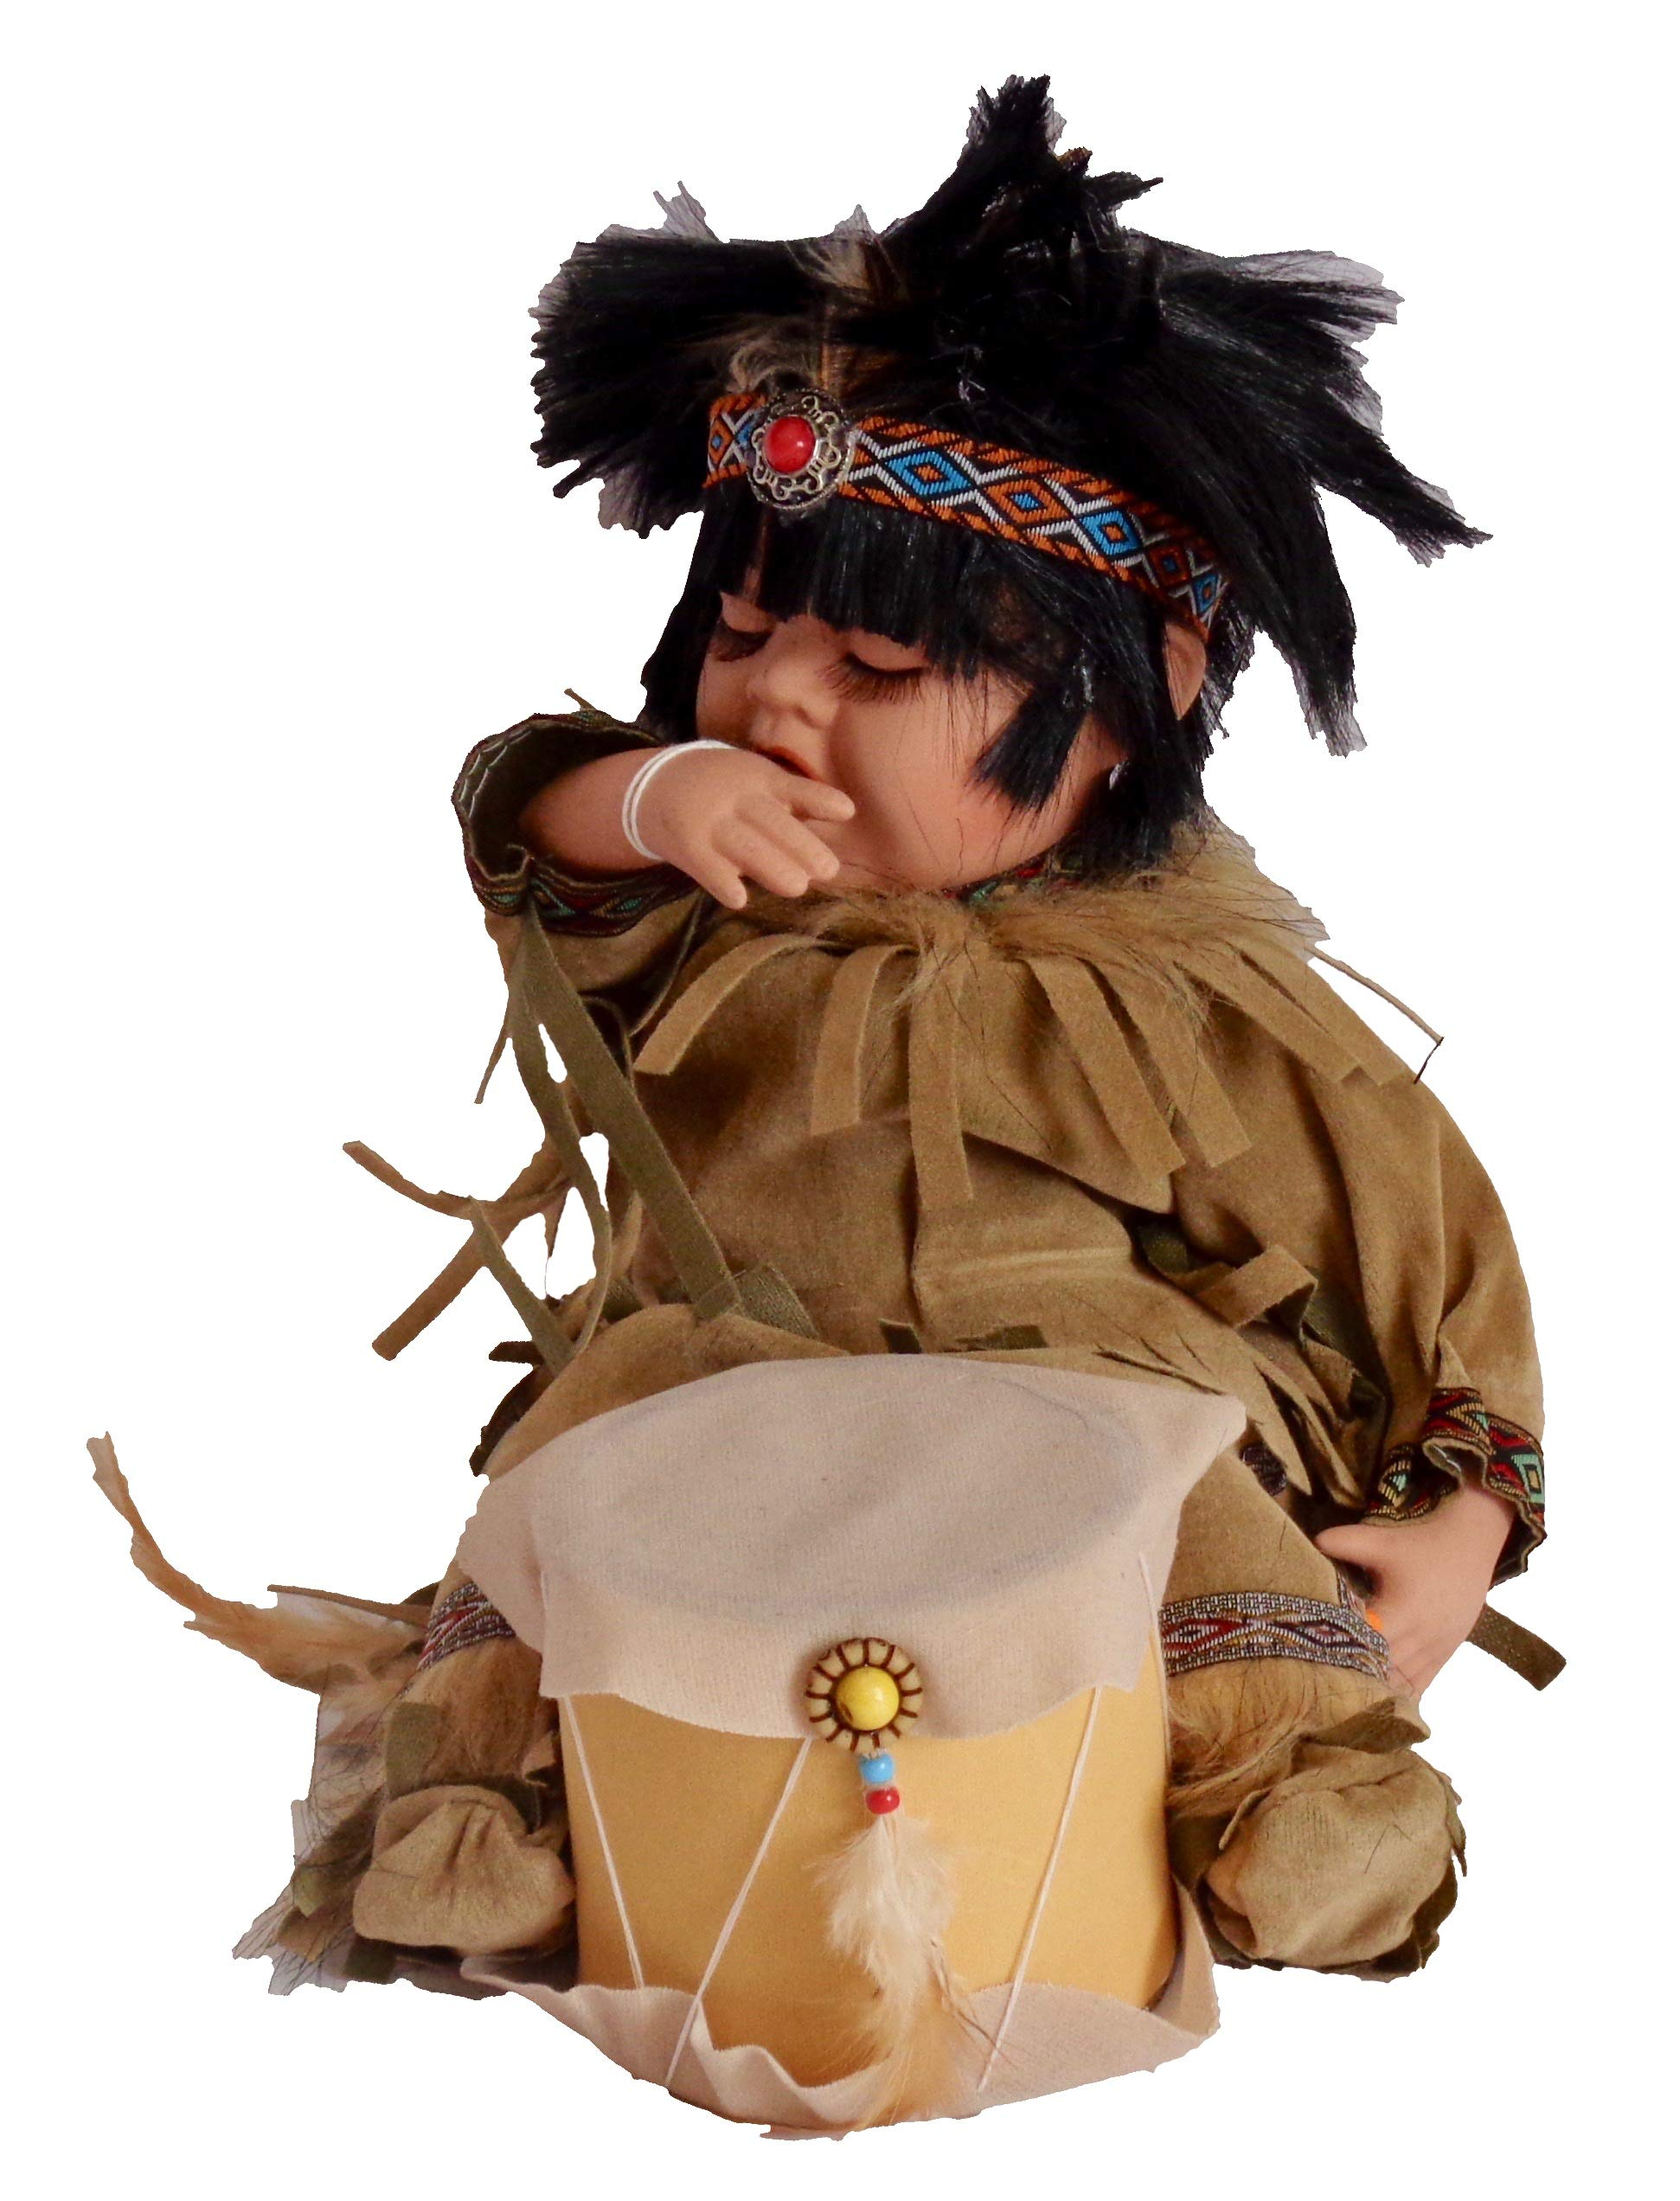 14'' Limited Edition Collectable Native American/Indian Drummer Boy Porcelain Doll (Light Brown)